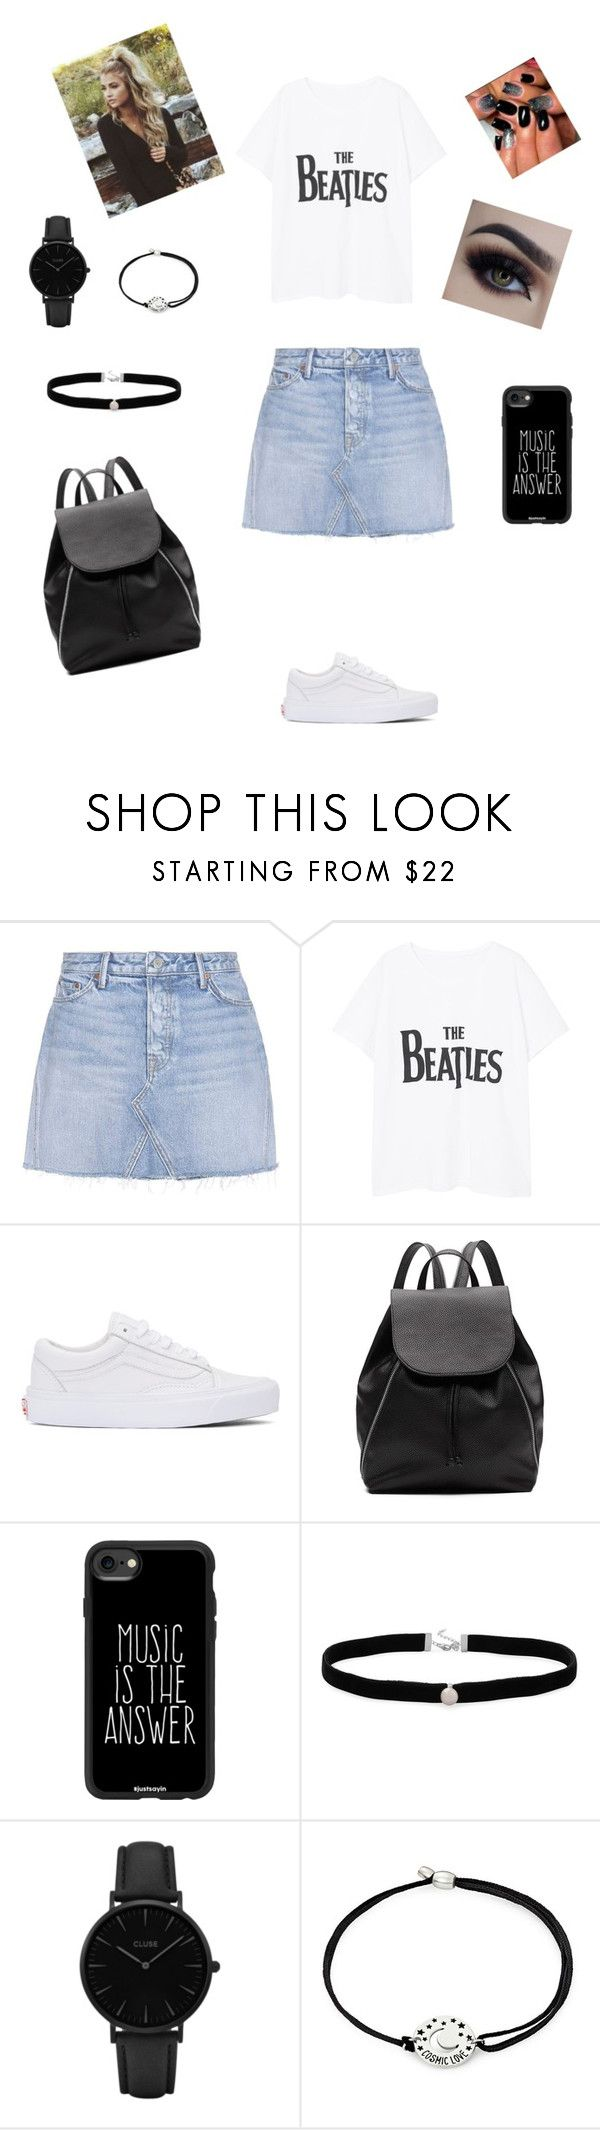 """Beatles"" by natalyholly on Polyvore featuring GRLFRND, MANGO, Vans, Witchery, Casetify, Amanda Rose Collection, CLUSE and Alex and Ani"